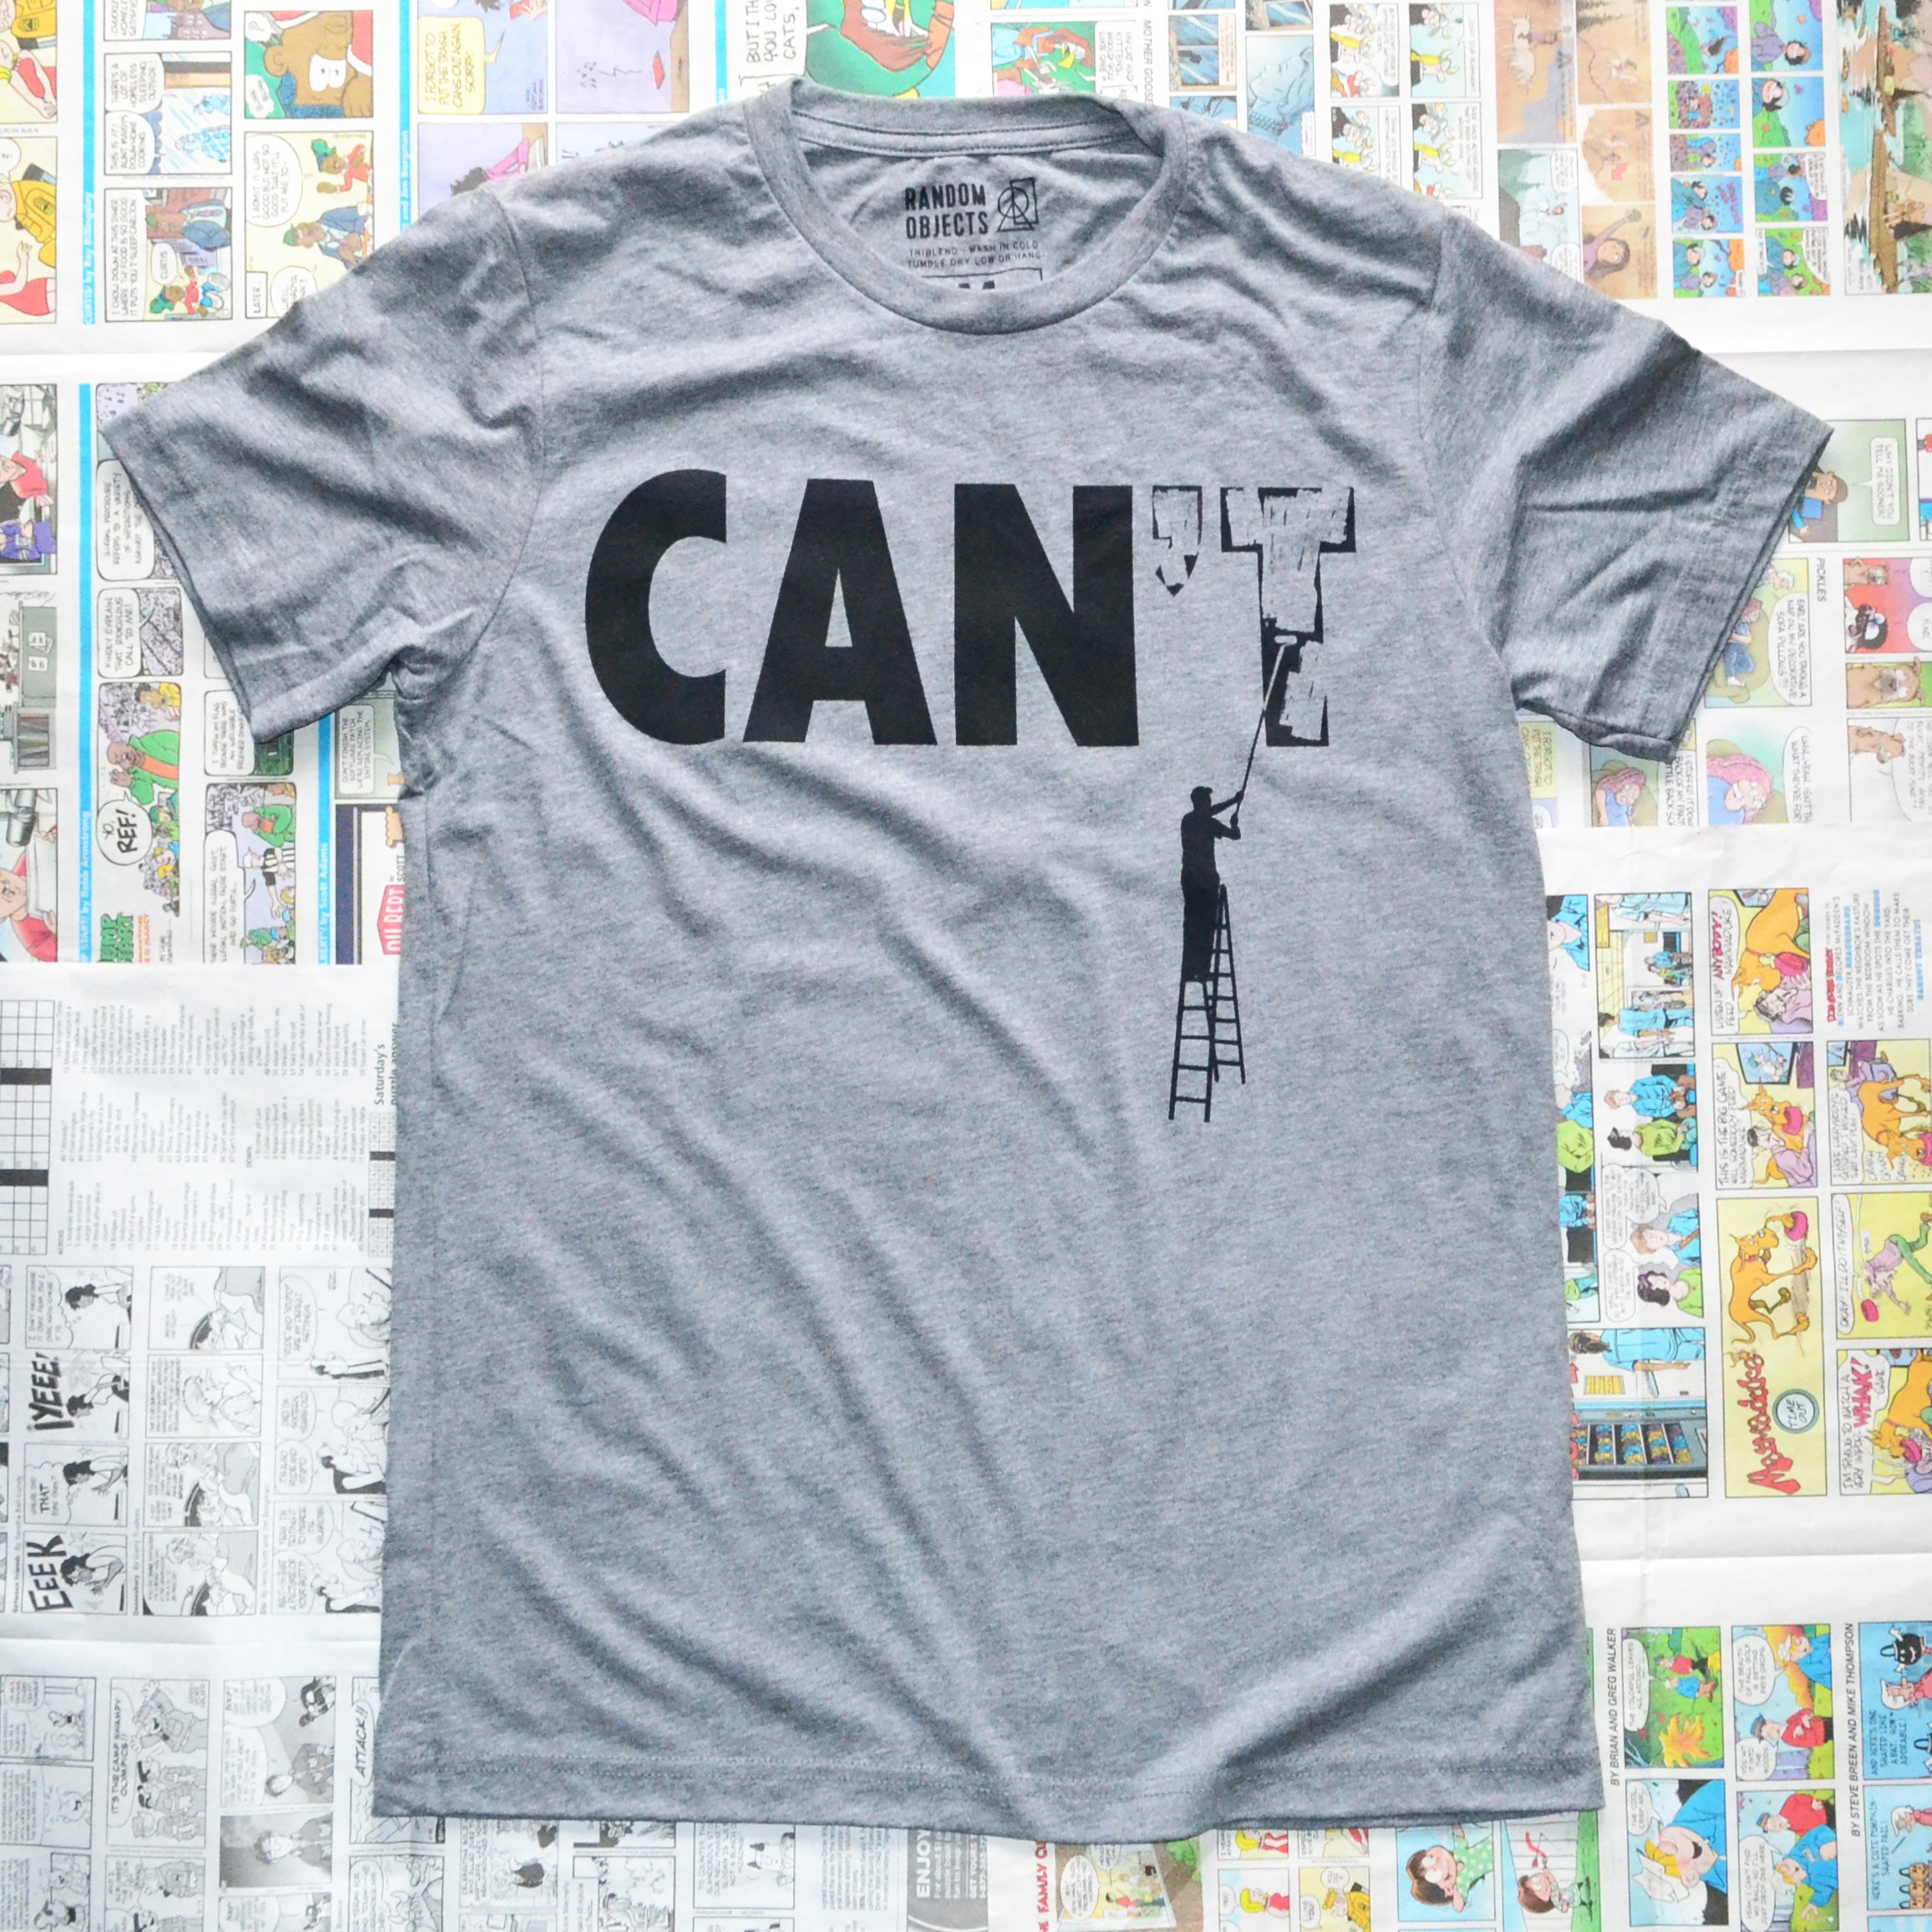 CAN OR CAN'T (TRI-BELND)